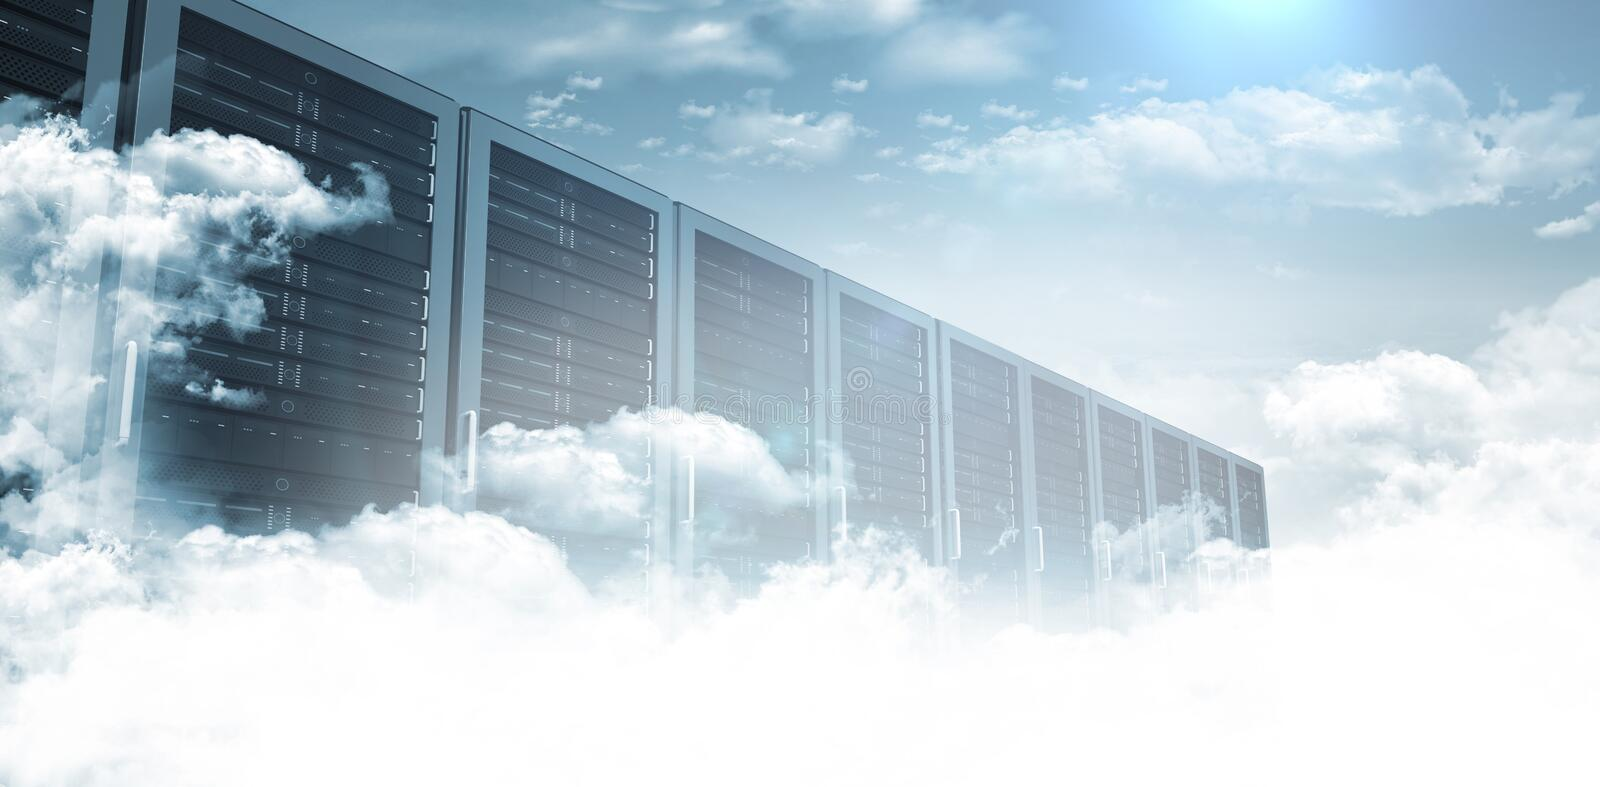 Servers in the clouds vector illustration